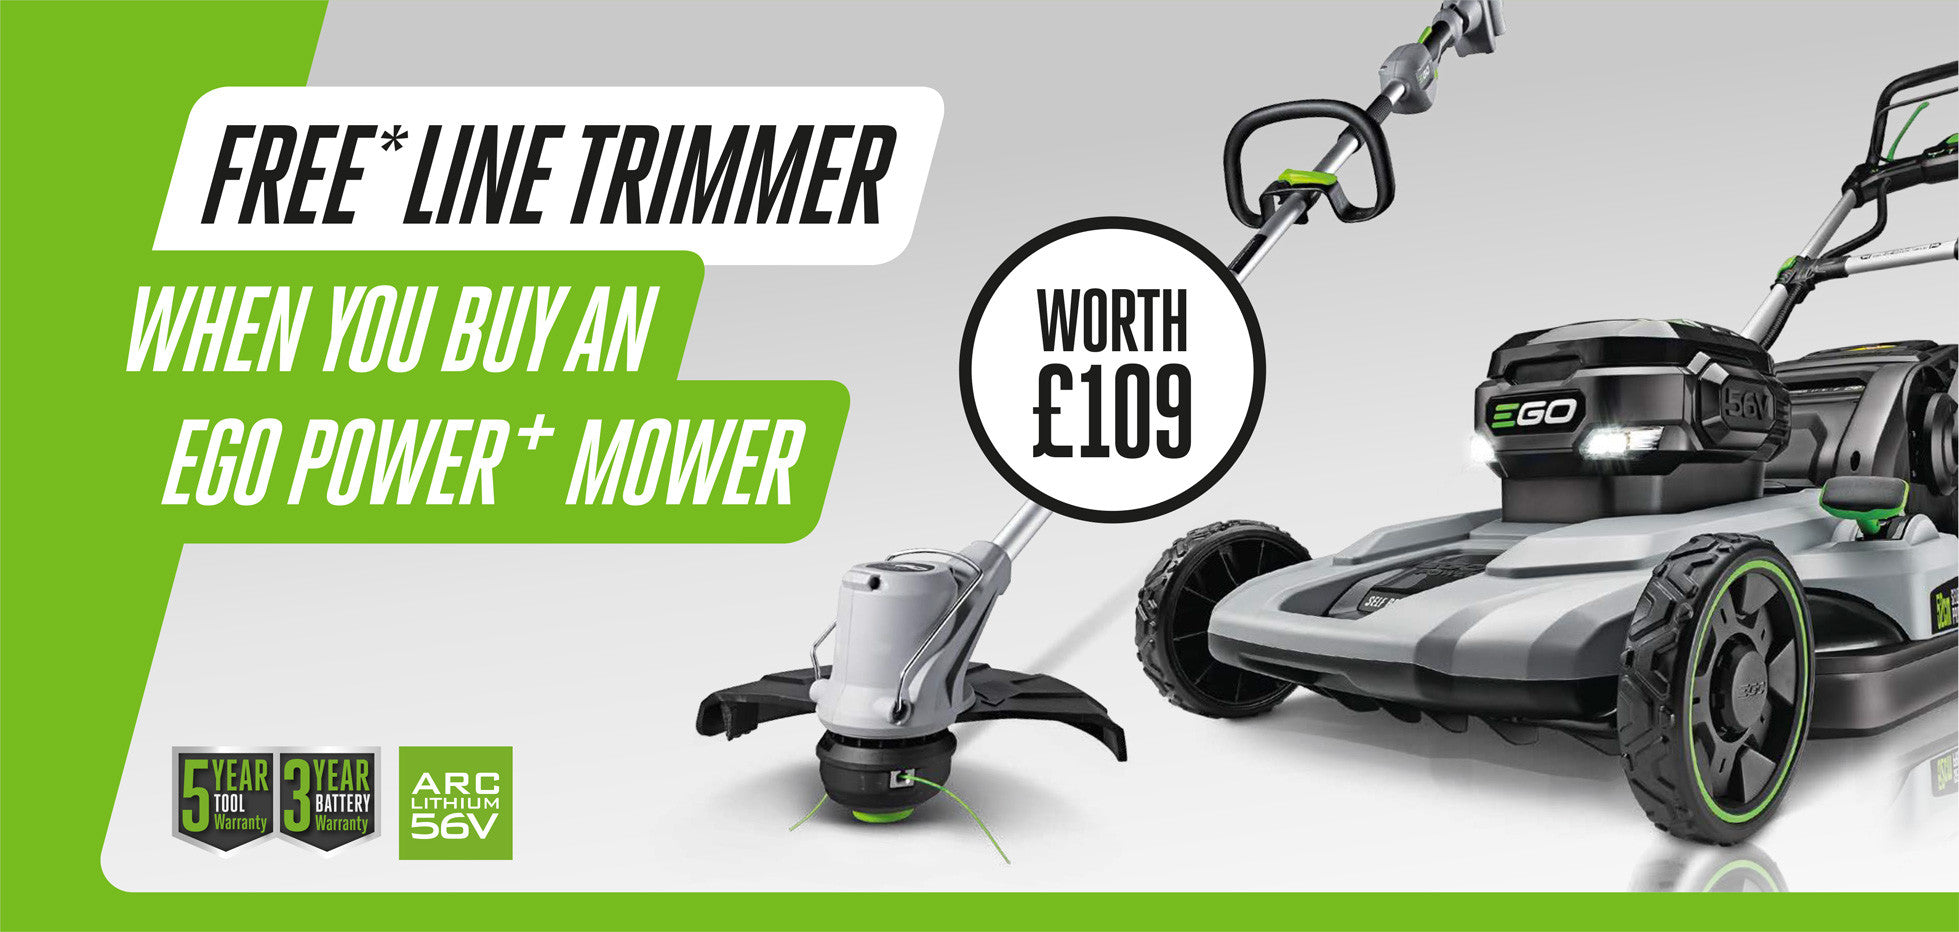 FREE* LINE TRIMMER WORTH £109 WHEN YOU BUY AN EGO POWER+ SELF-PROPELLED MOWER